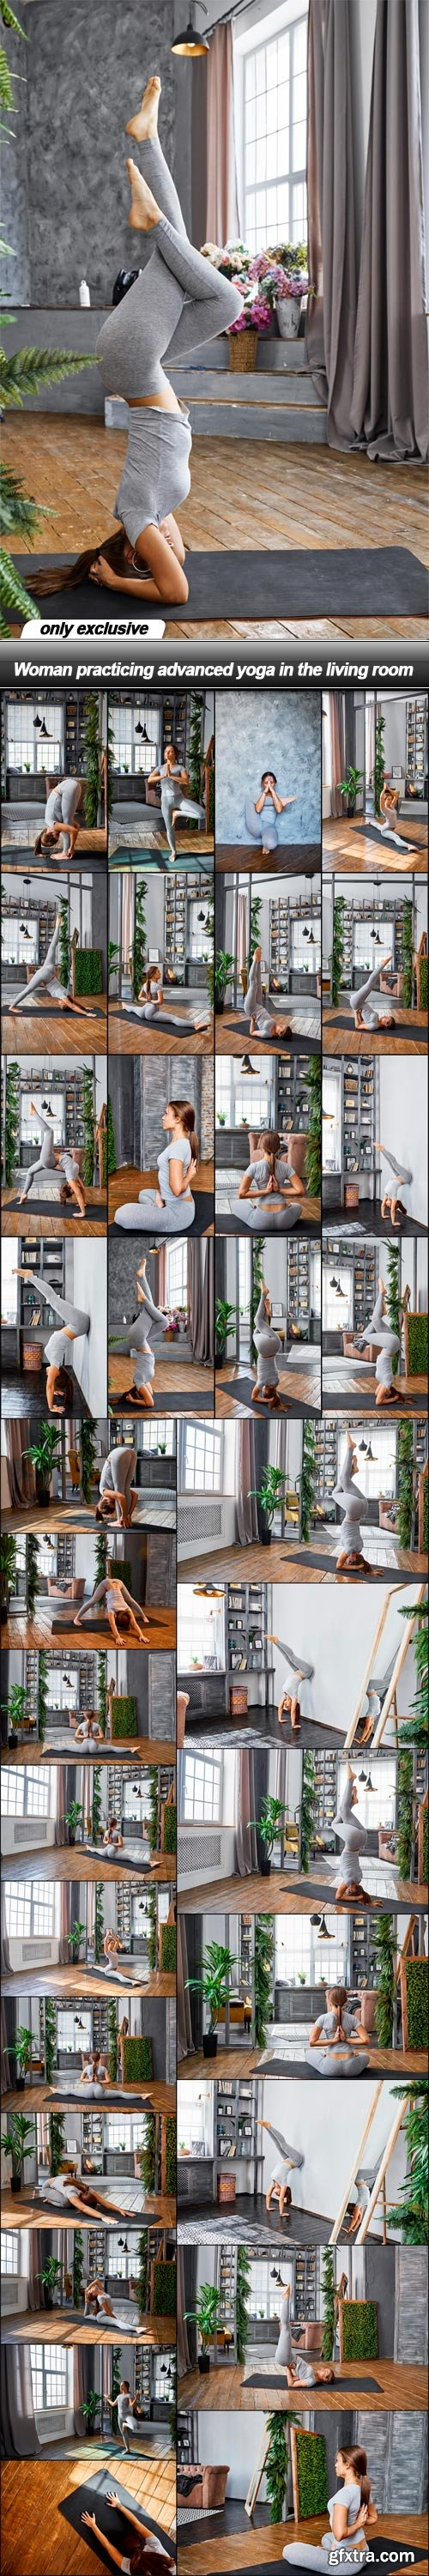 Woman practicing advanced yoga in the living room - 33 UHQ JPEG